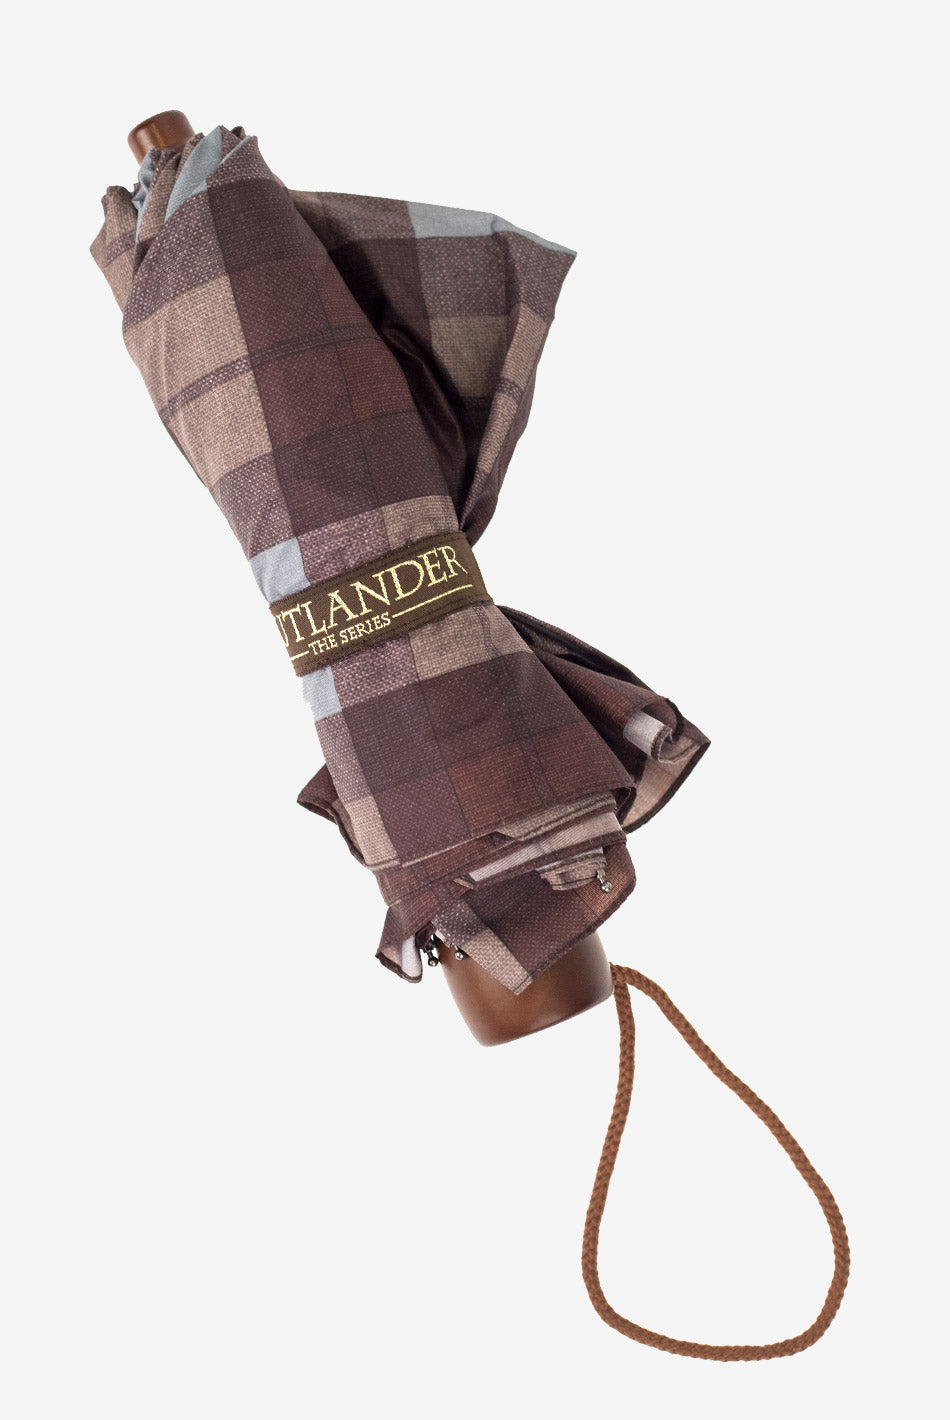 Outlander Umbrella